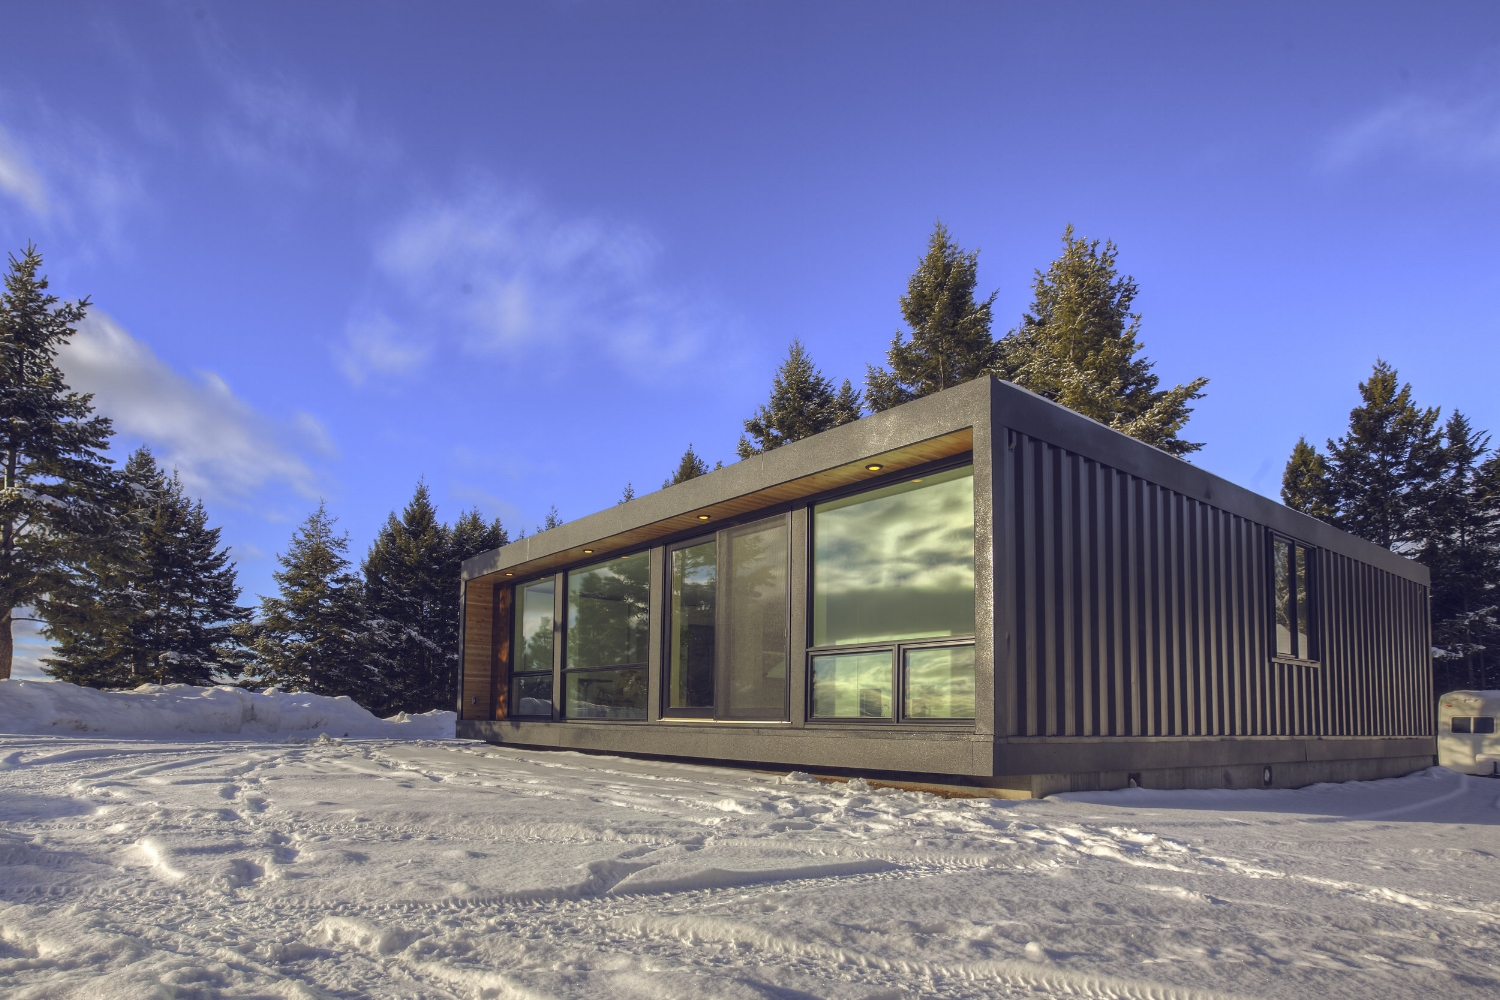 Modern Shipping Container Home watch the honomobo modern shipping container home get installed